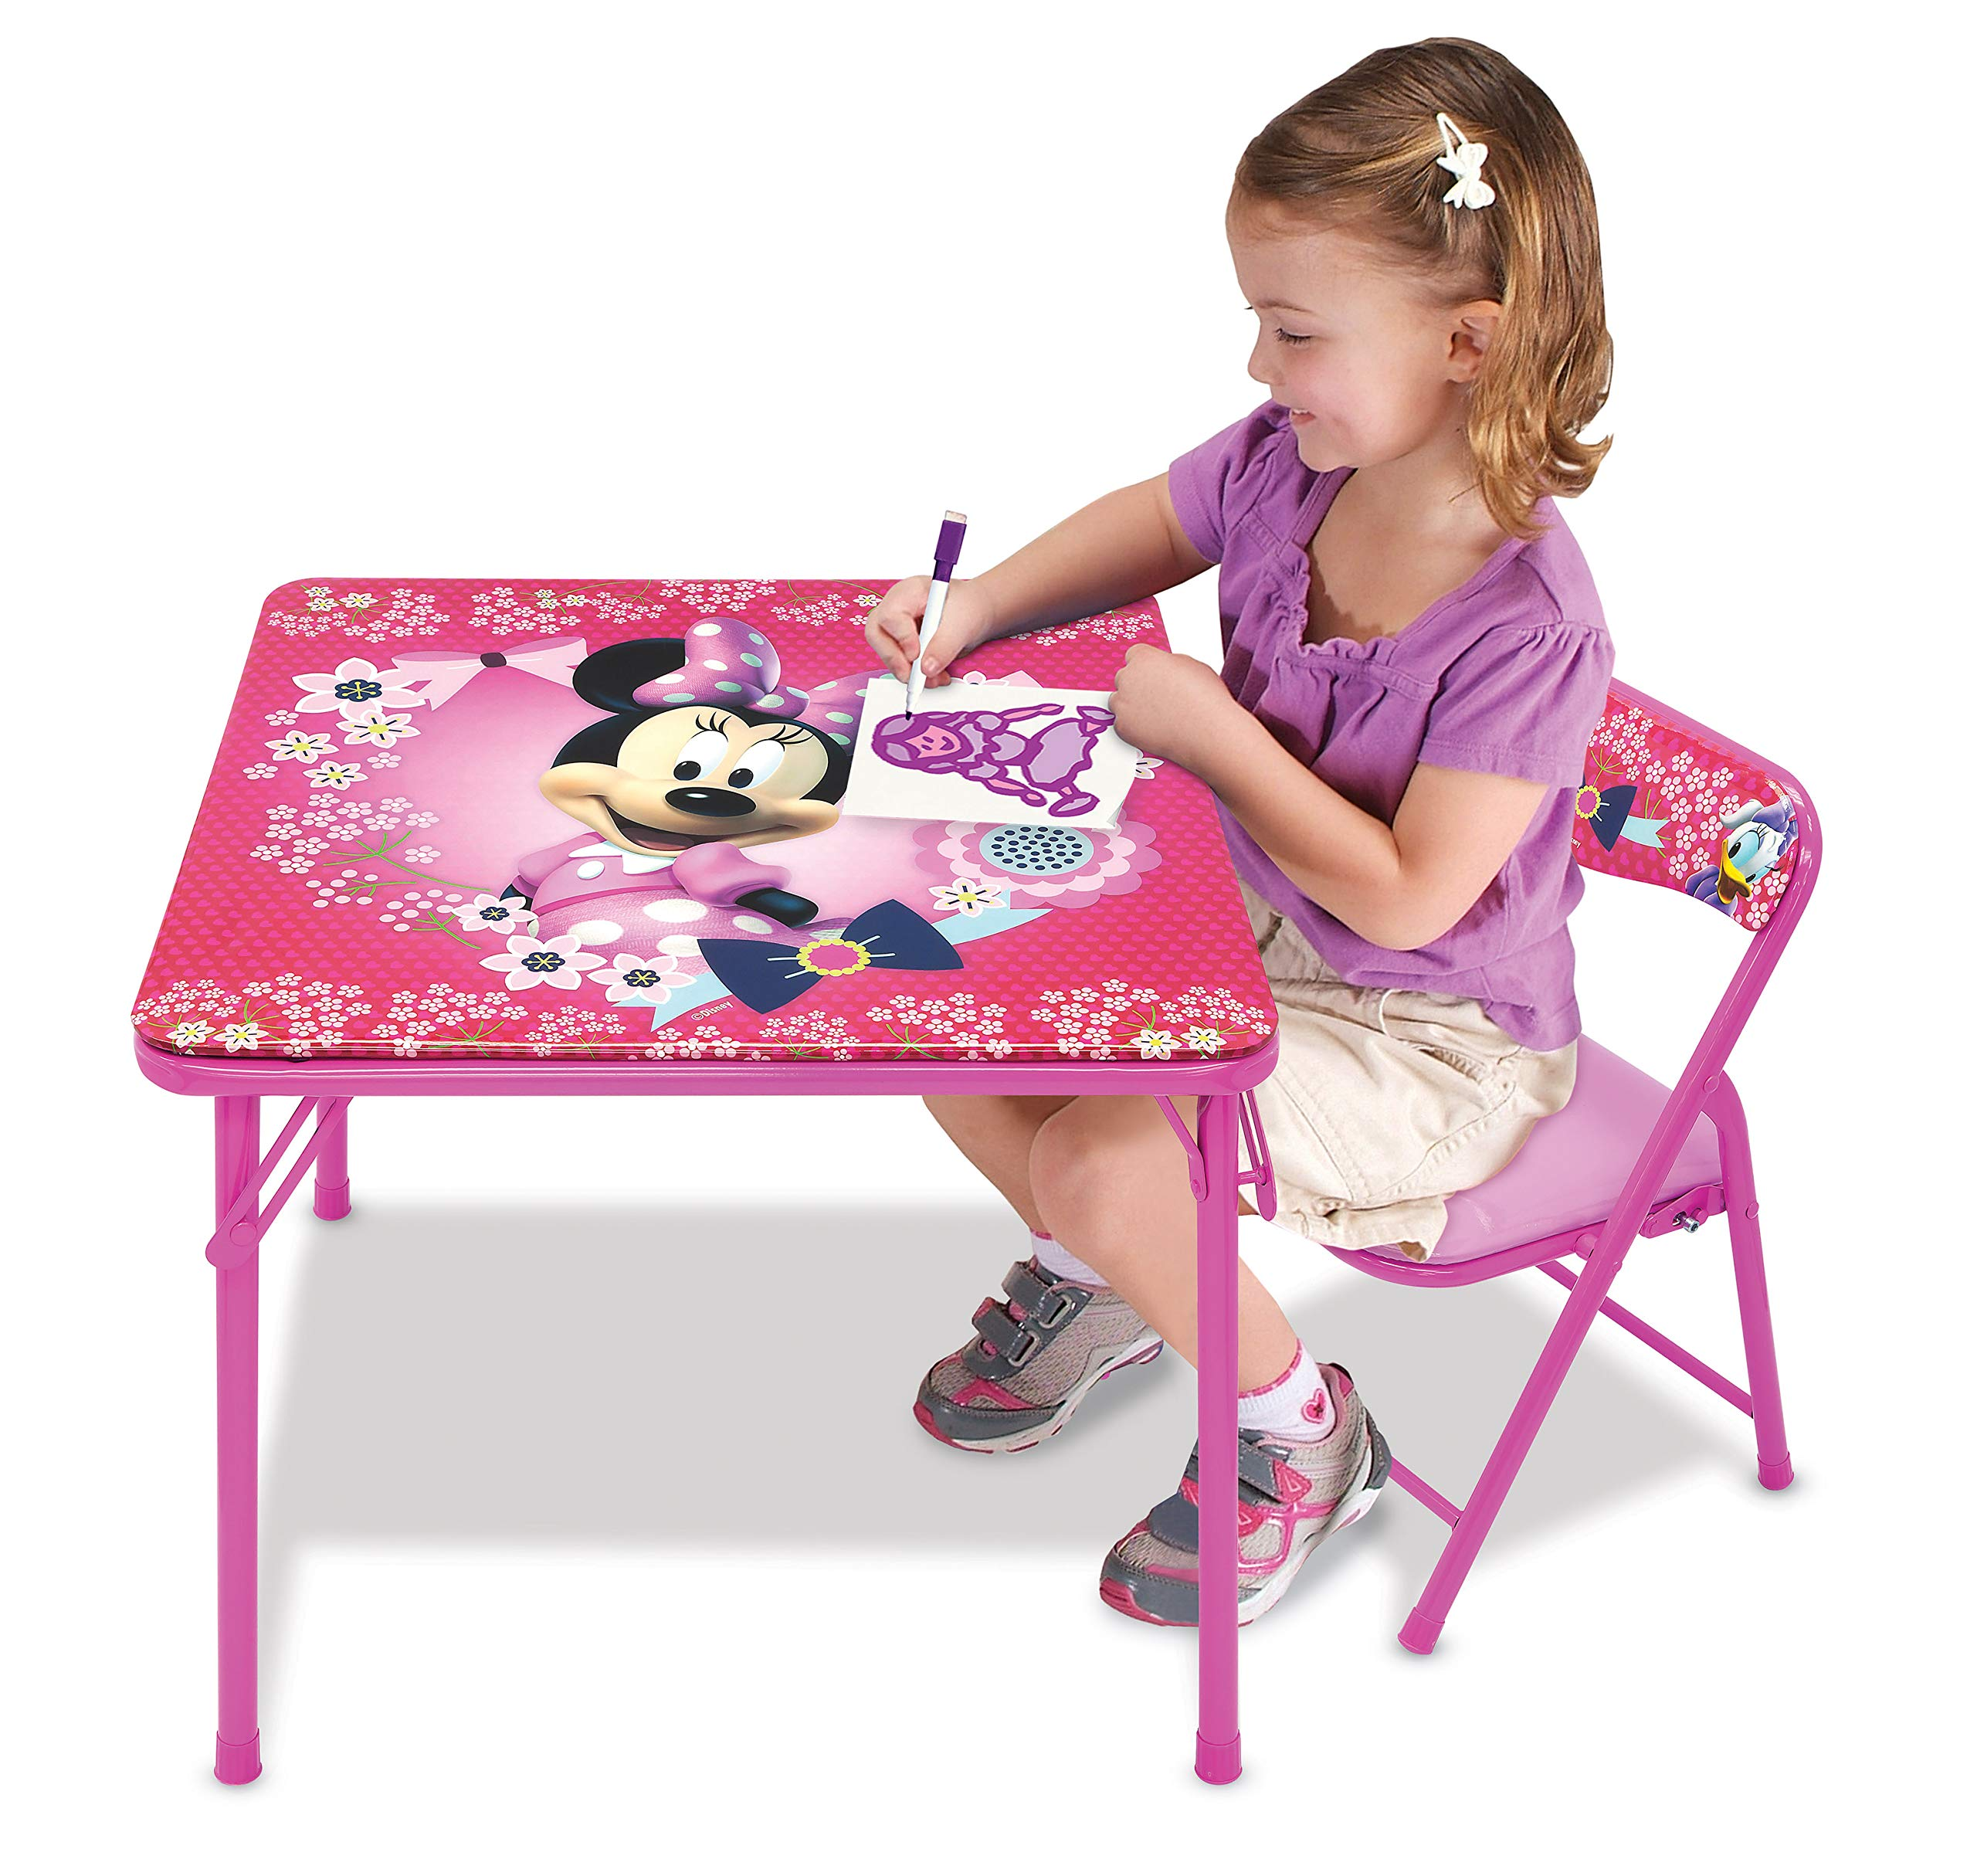 Minnie Mouse Blossoms & Bows Jr. Activity Table Set with 1 Chair by Minnie Mouse